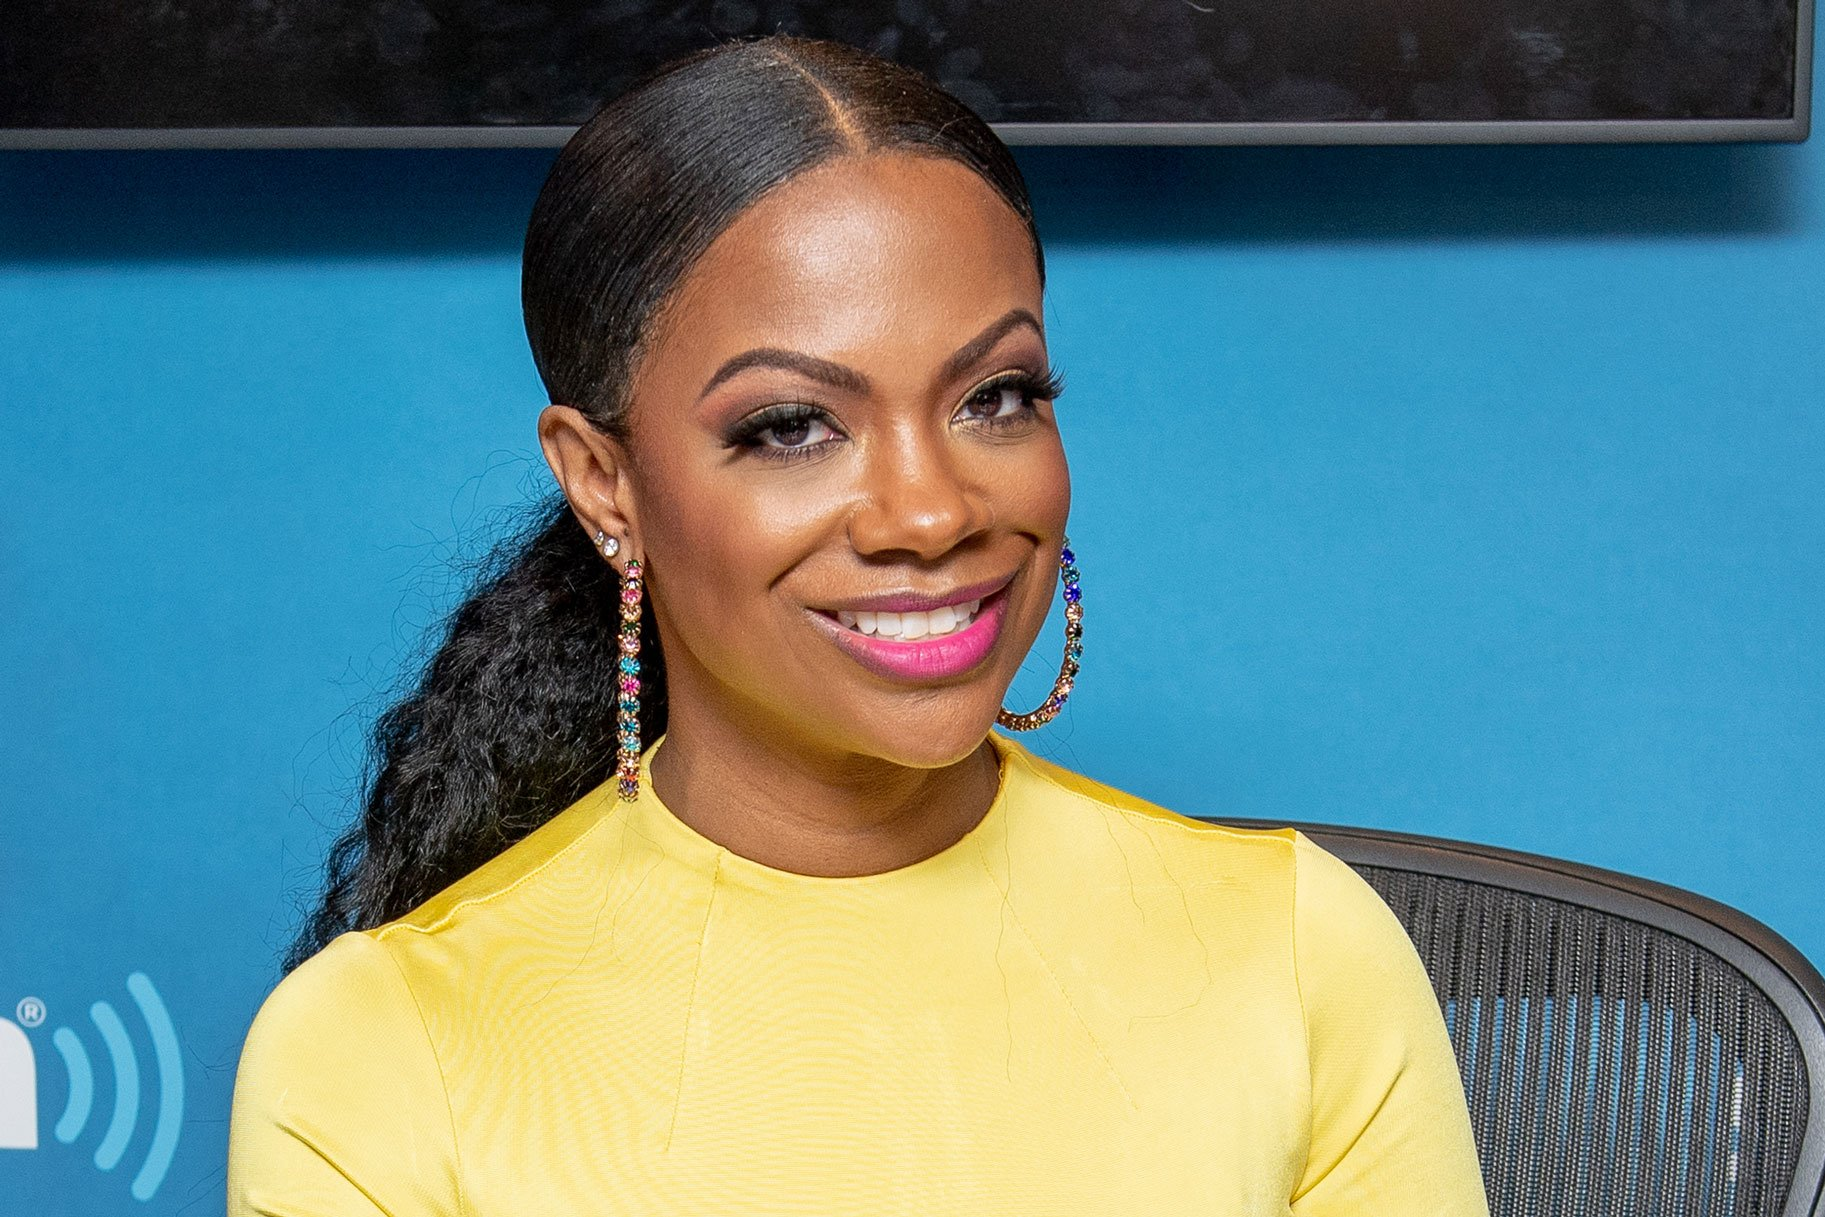 Kandi Burruss Breaks The Internet After She Drops Her Clothes To Bathe In Milk